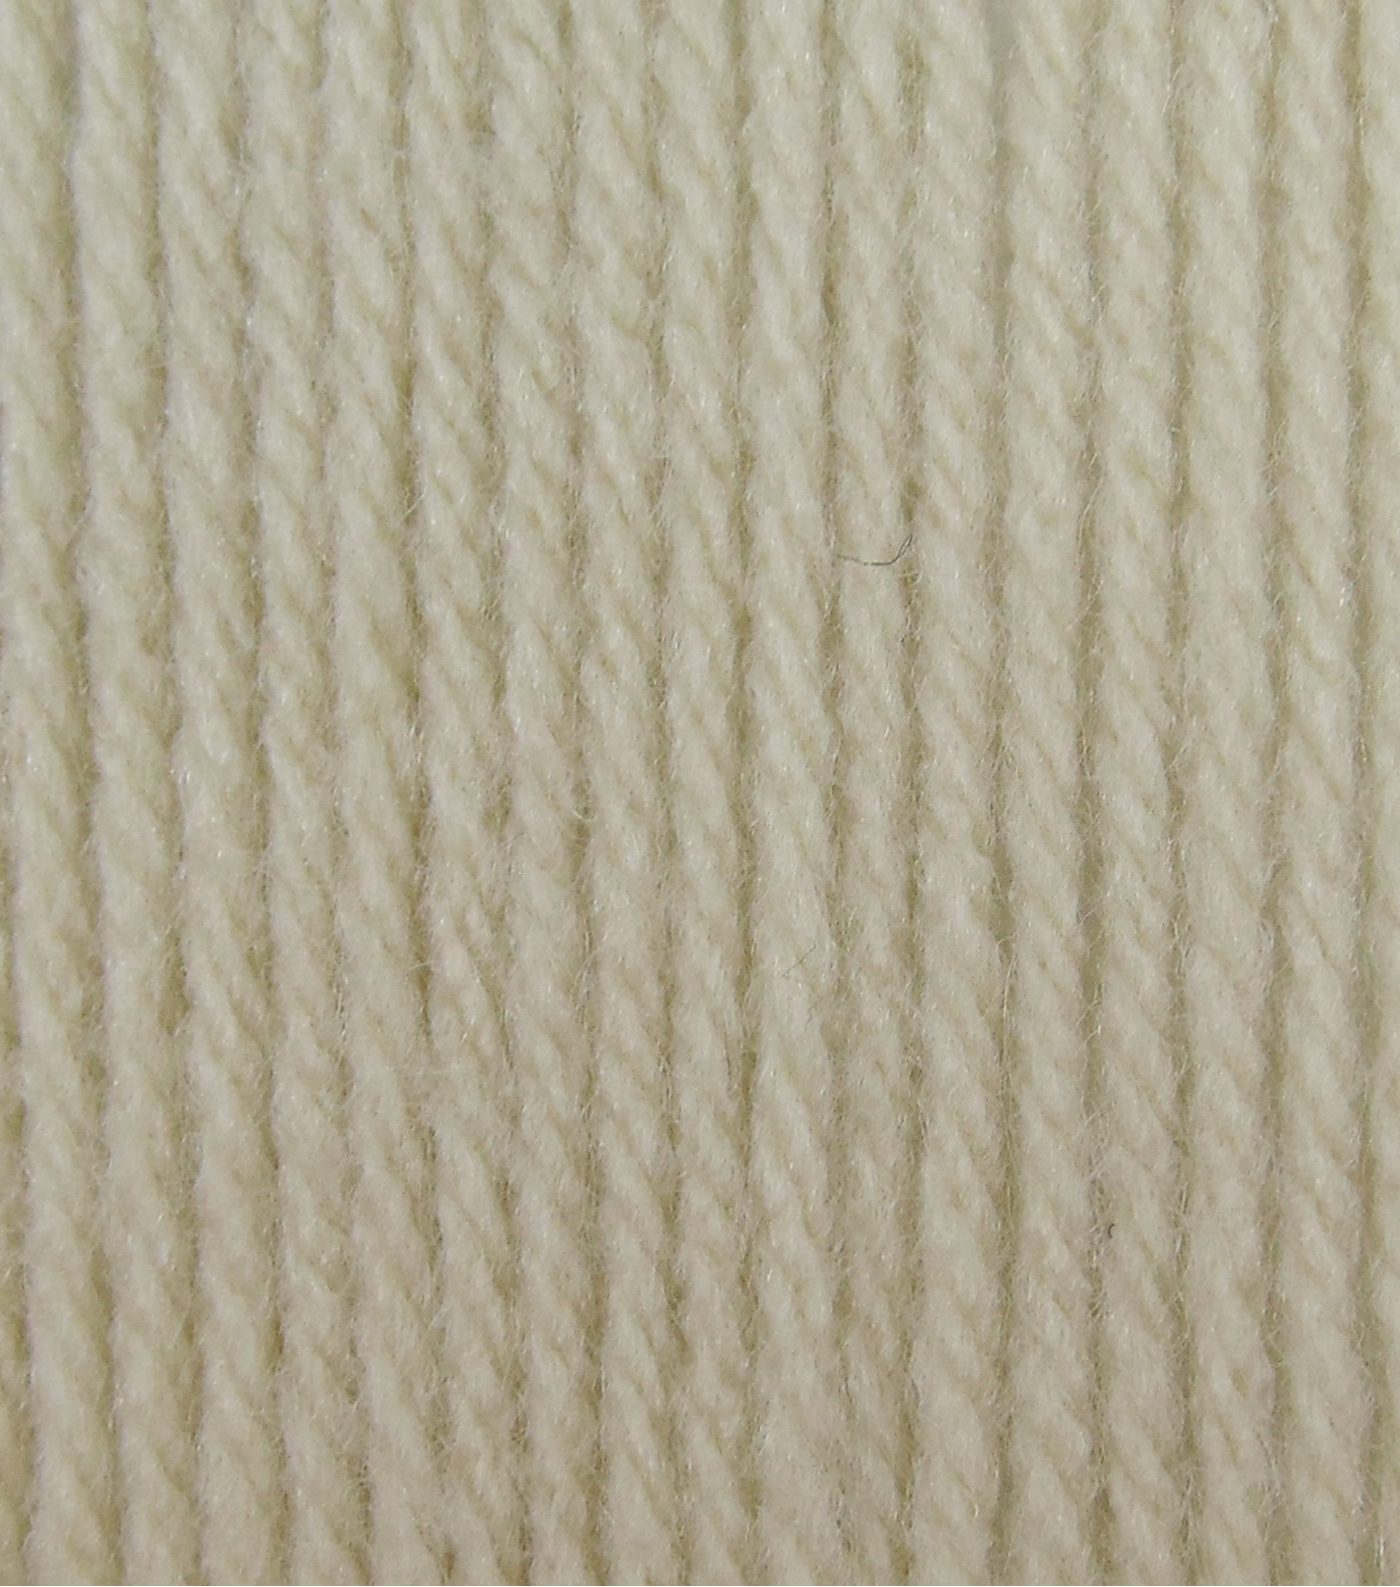 Big Twist Collection Value Worsted Yarn, Cream